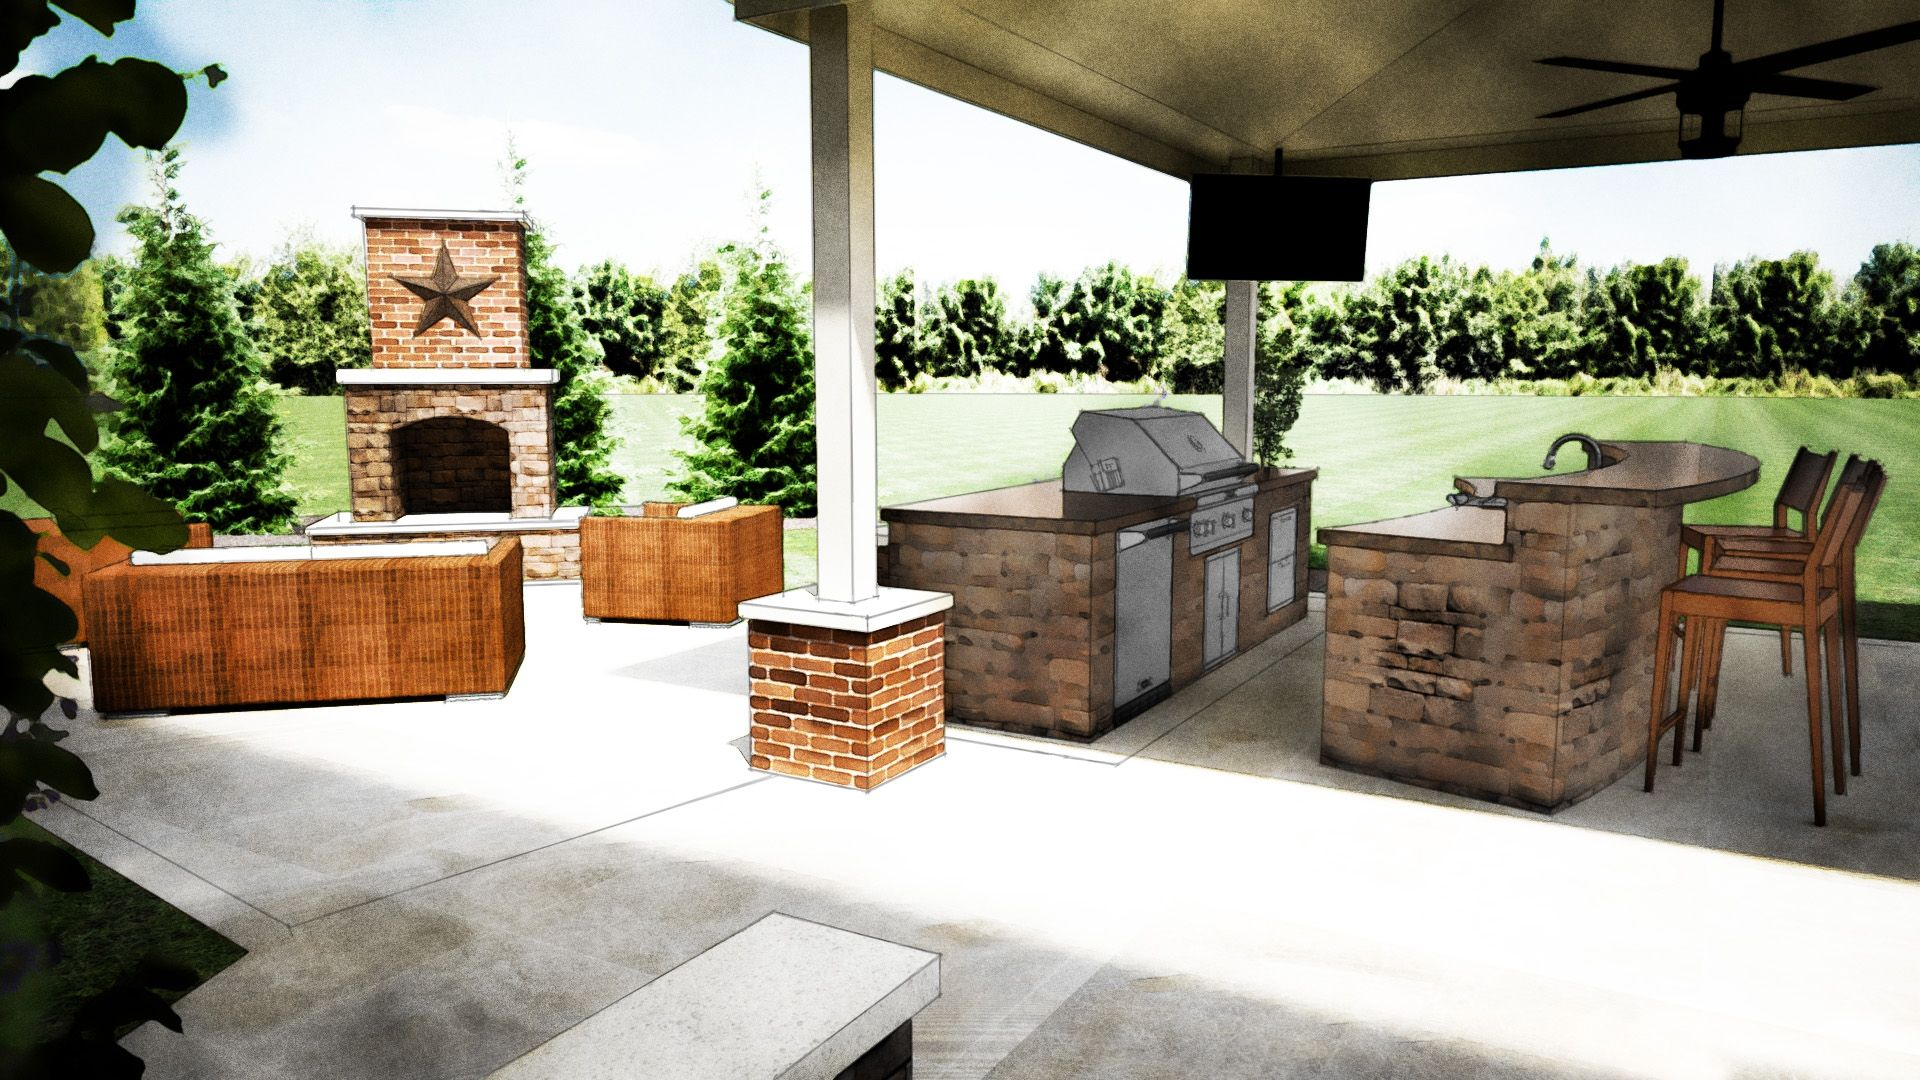 Bbq Outdoor Kitchen Designs  Httpjubiz  Pinterest Classy How To Design An Outdoor Kitchen Design Decoration